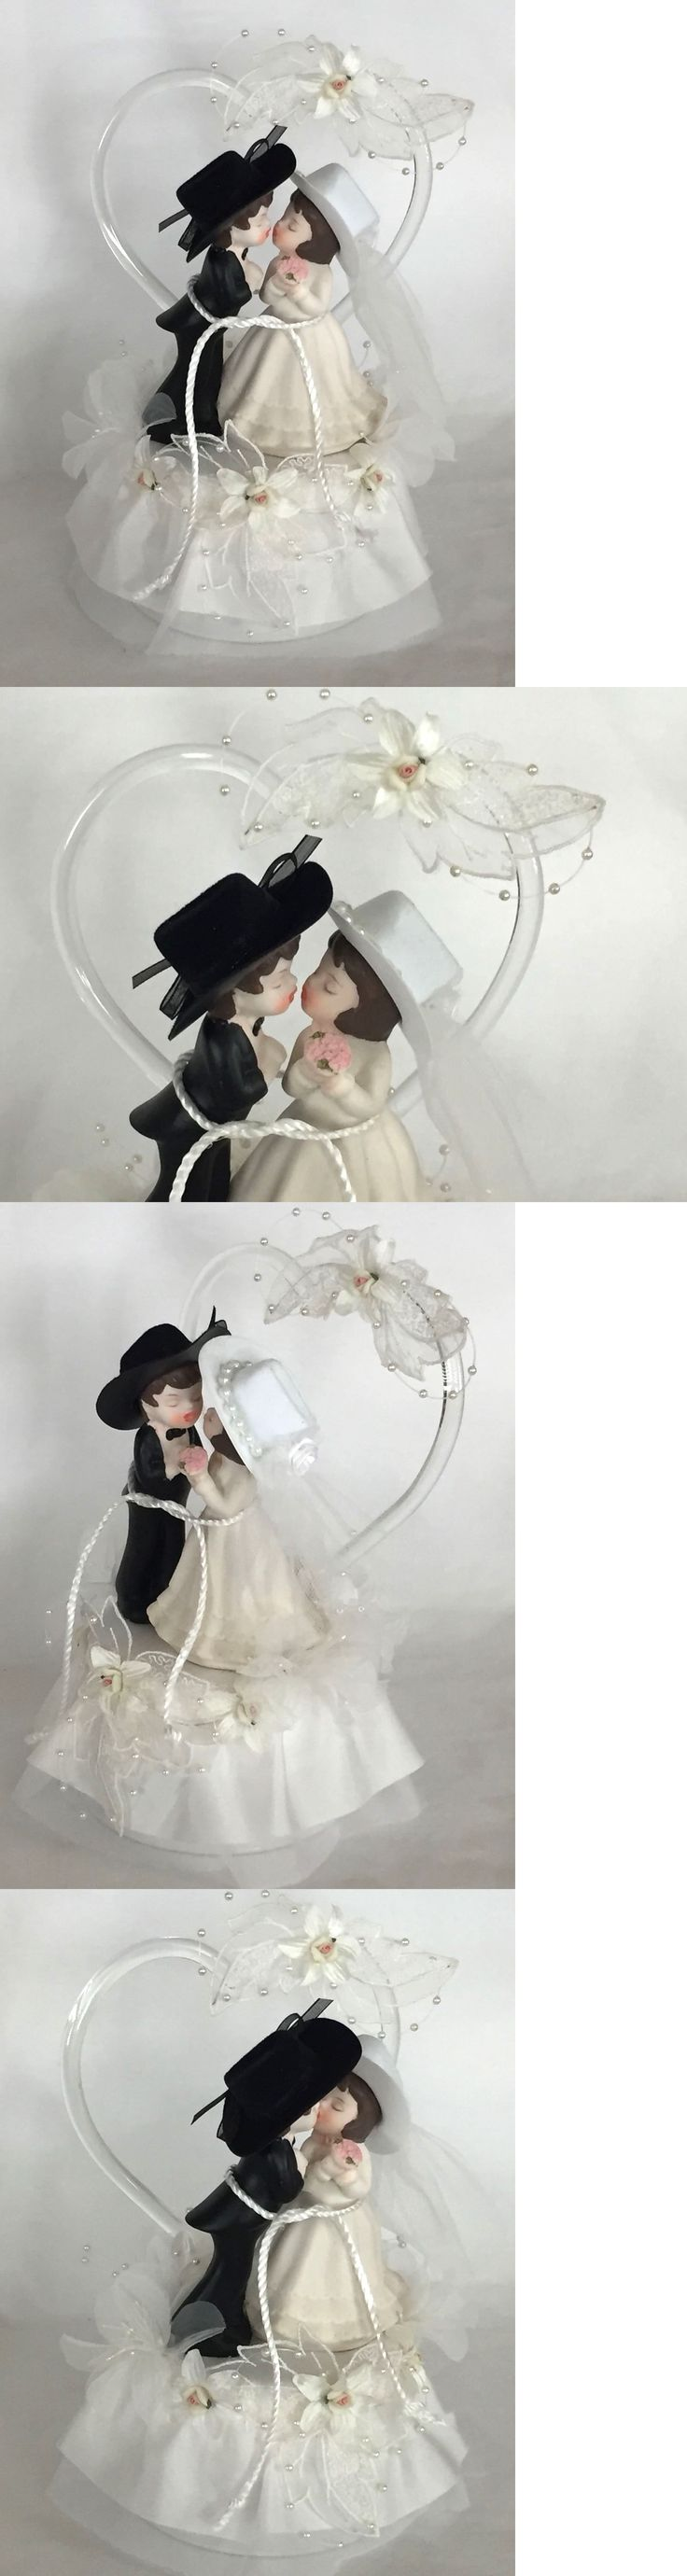 Wedding Cakes Toppers: Western Cowboy Lassoed To His Cowgirl Bride, In Bridal Hat, White Cake Top -> BUY IT NOW ONLY: $48 on eBay!